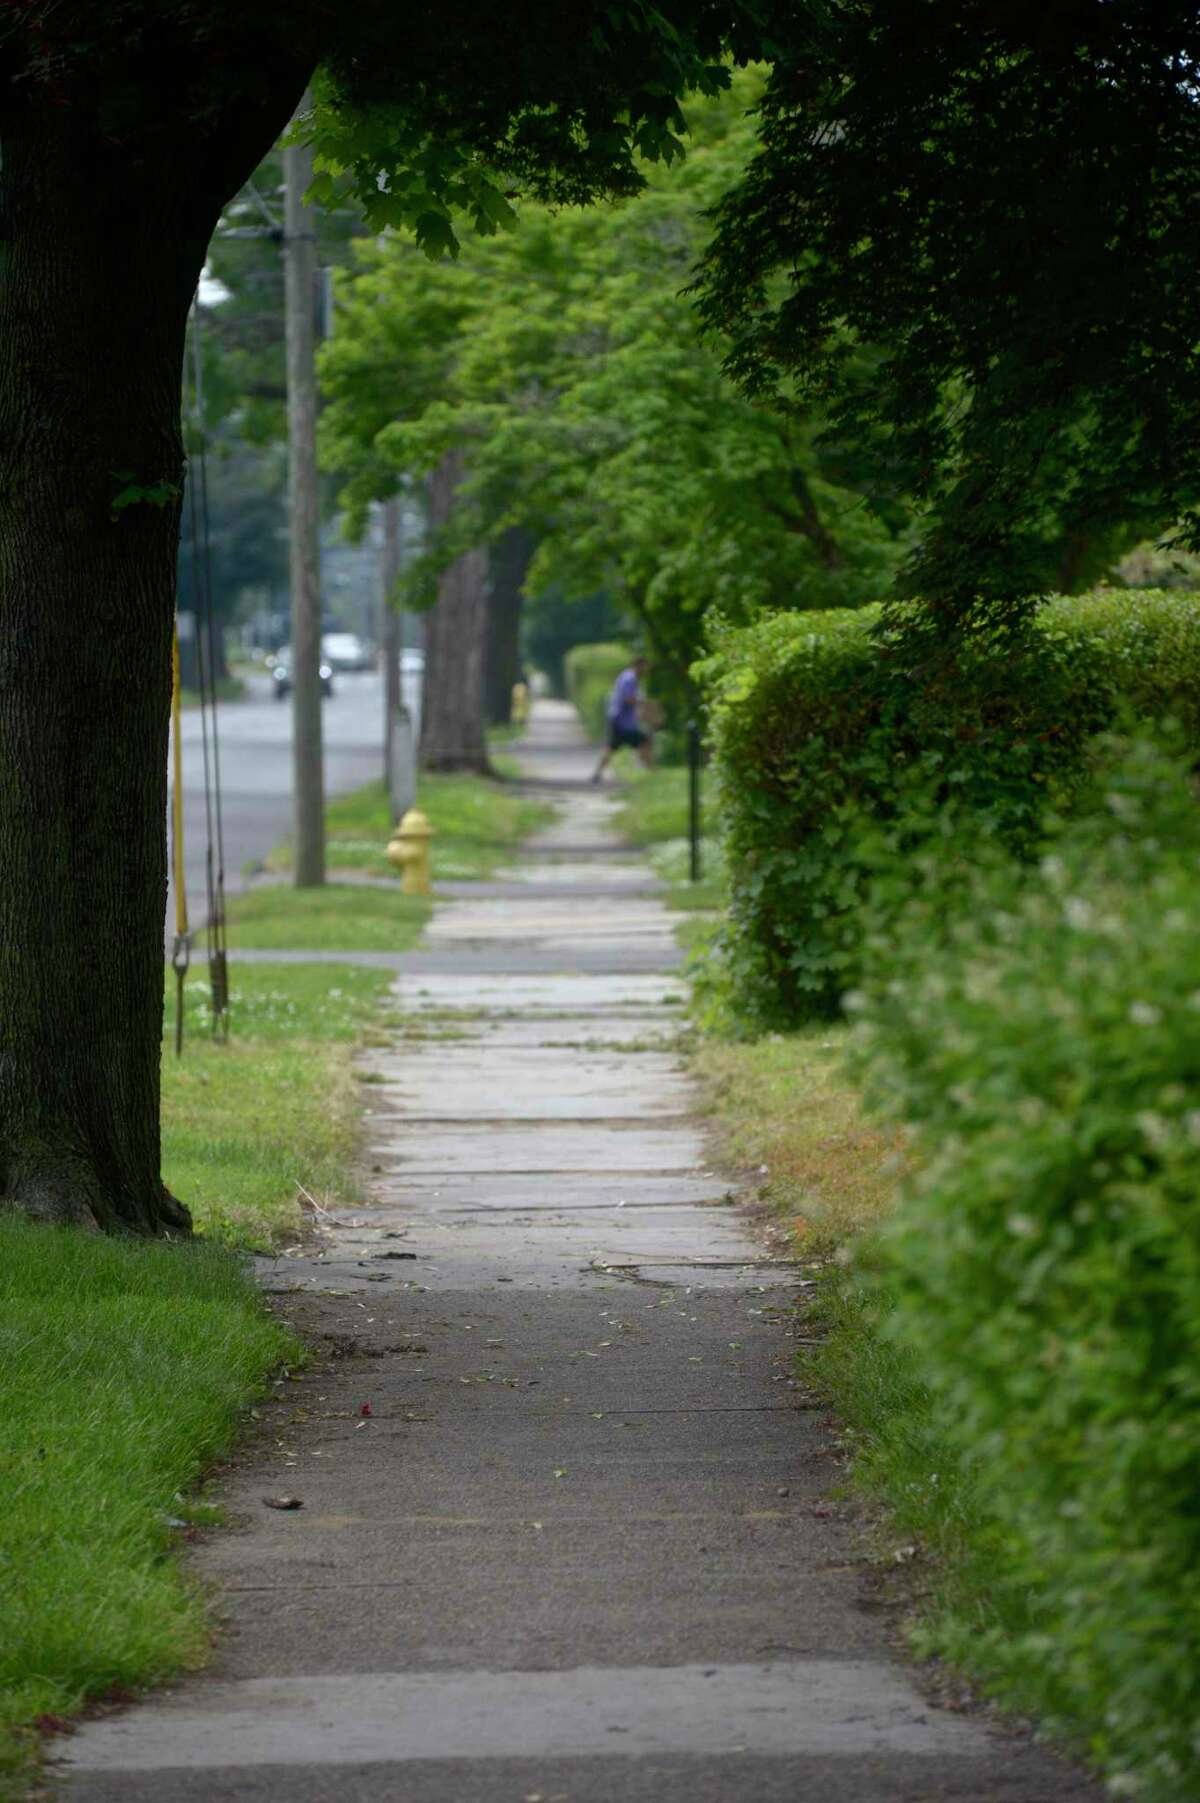 The city plans to replace the sidewalks on Balmforth Avenue between Osborne Street and North Street. Tuesday, June 8, 2021, in Danbury, Conn.